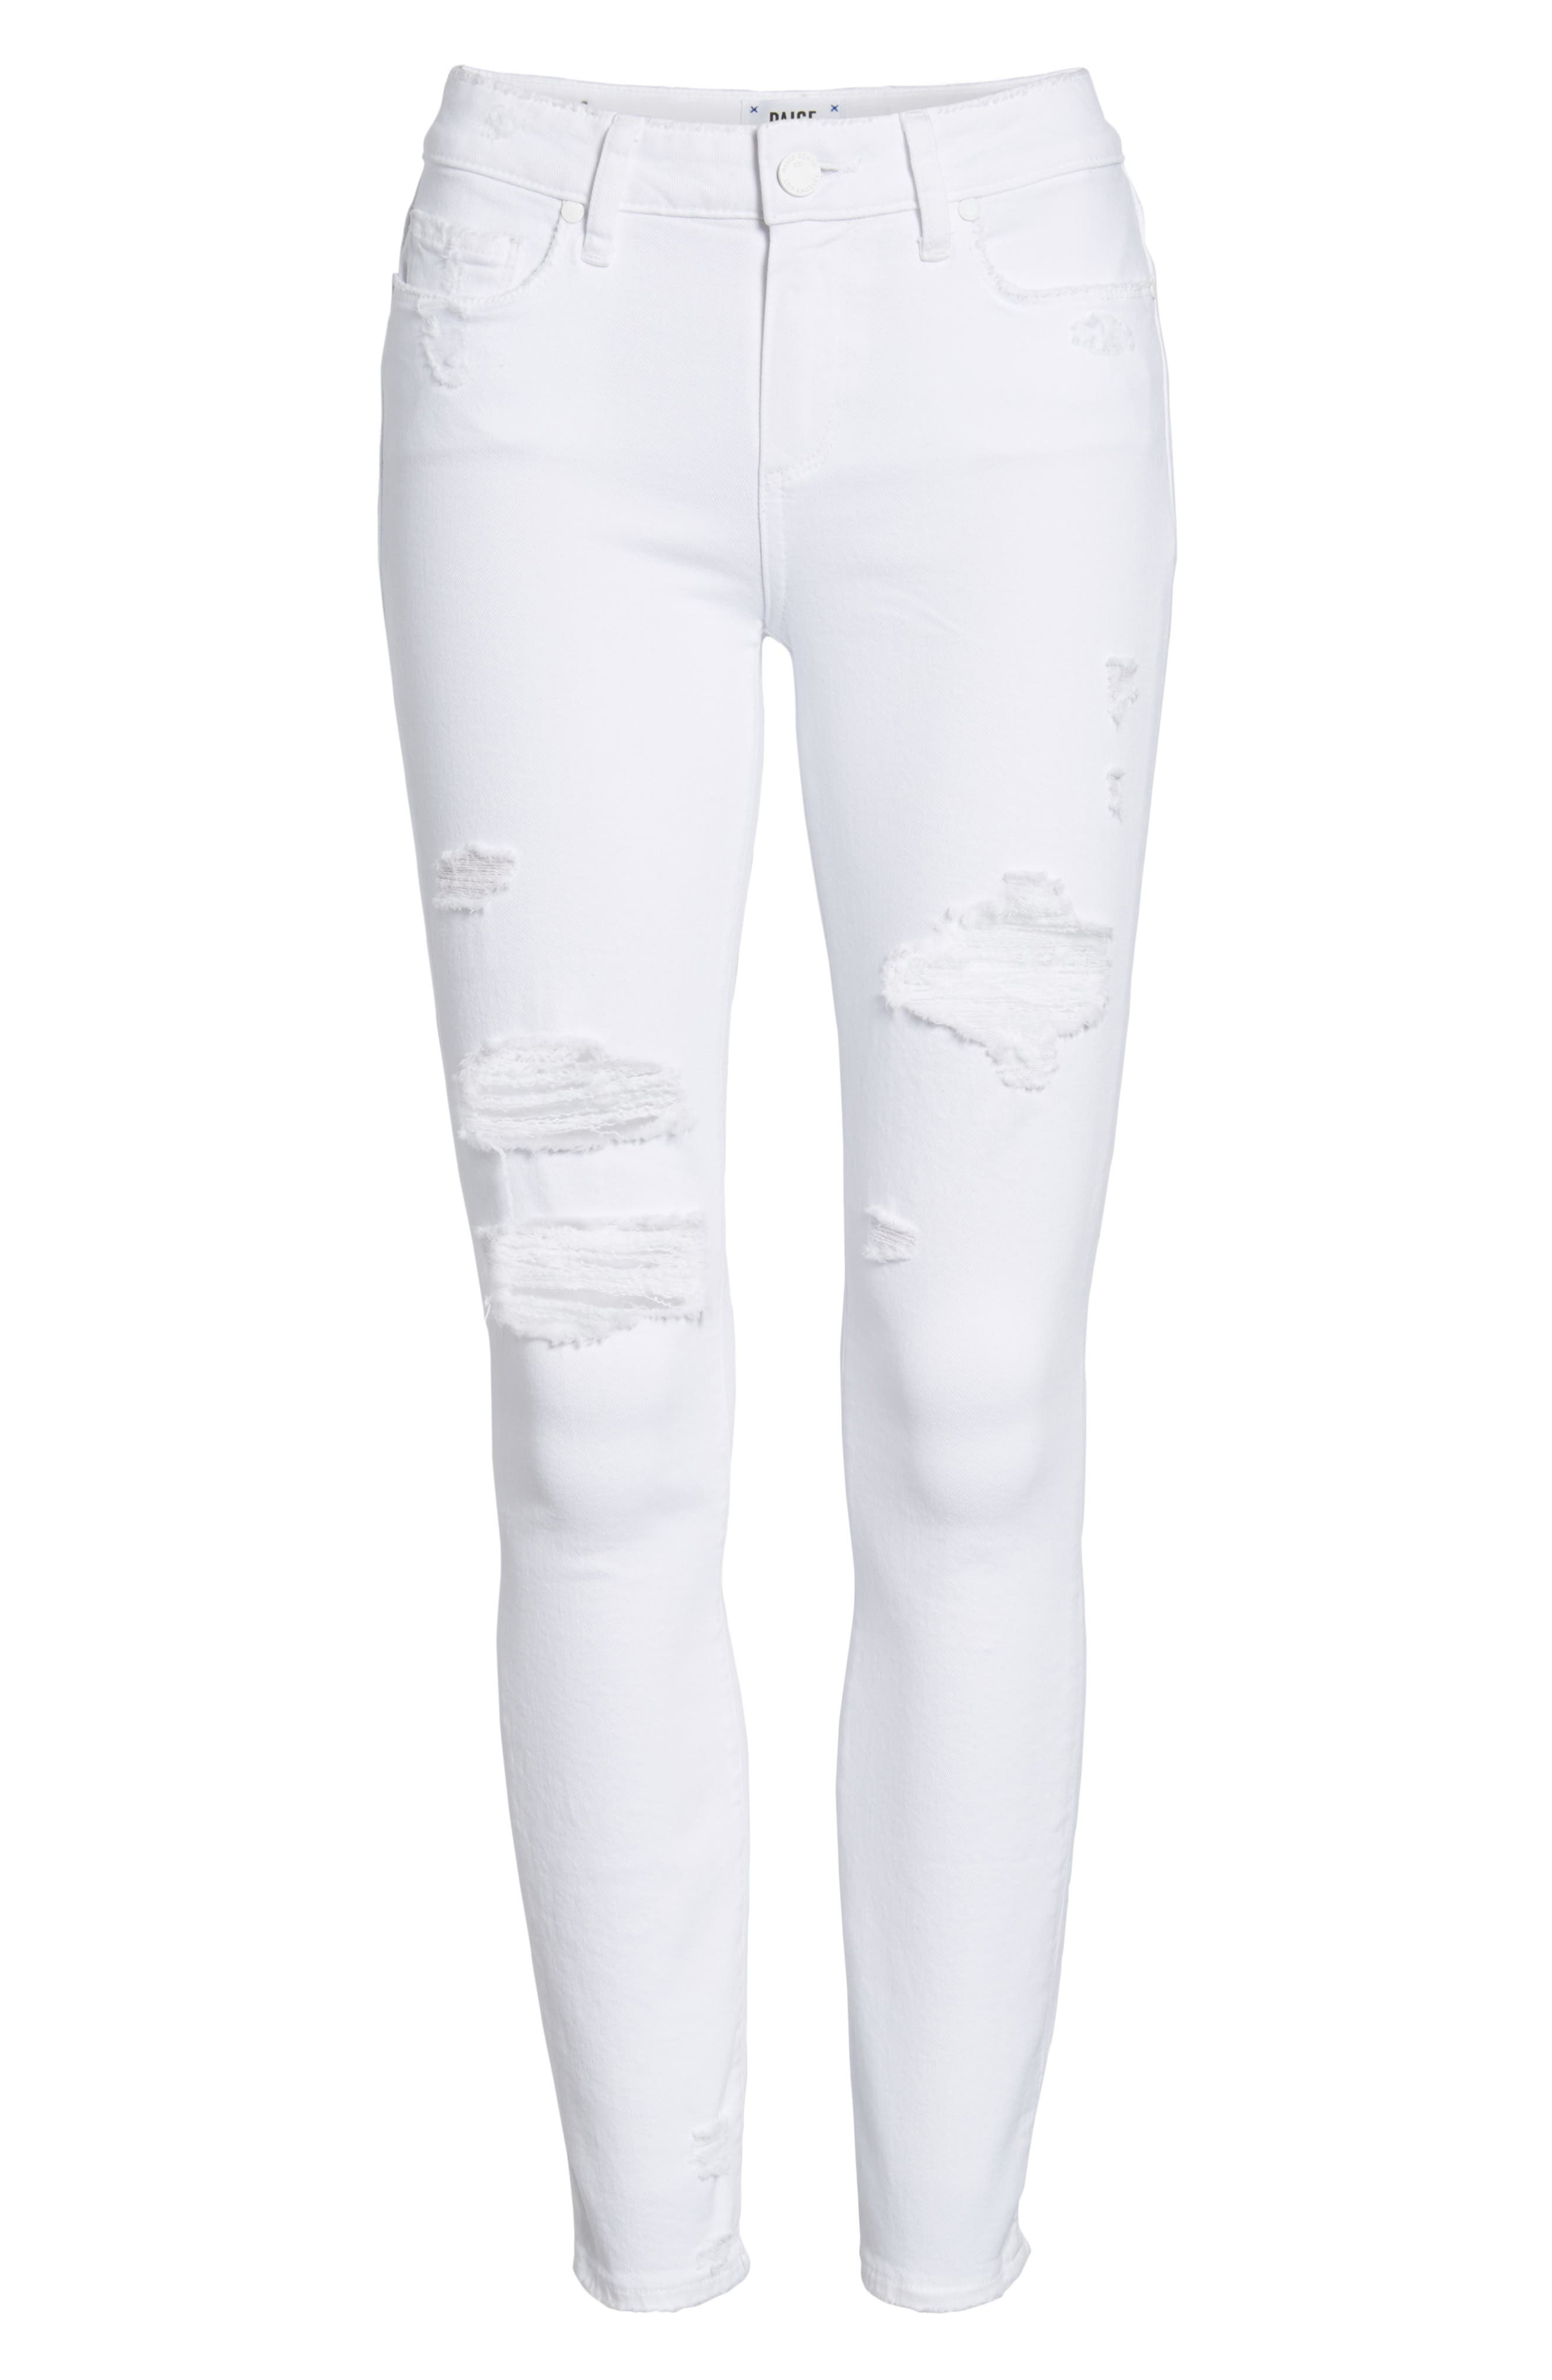 Skyline Ripped Ankle Skinny Jeans,                             Alternate thumbnail 7, color,                             100